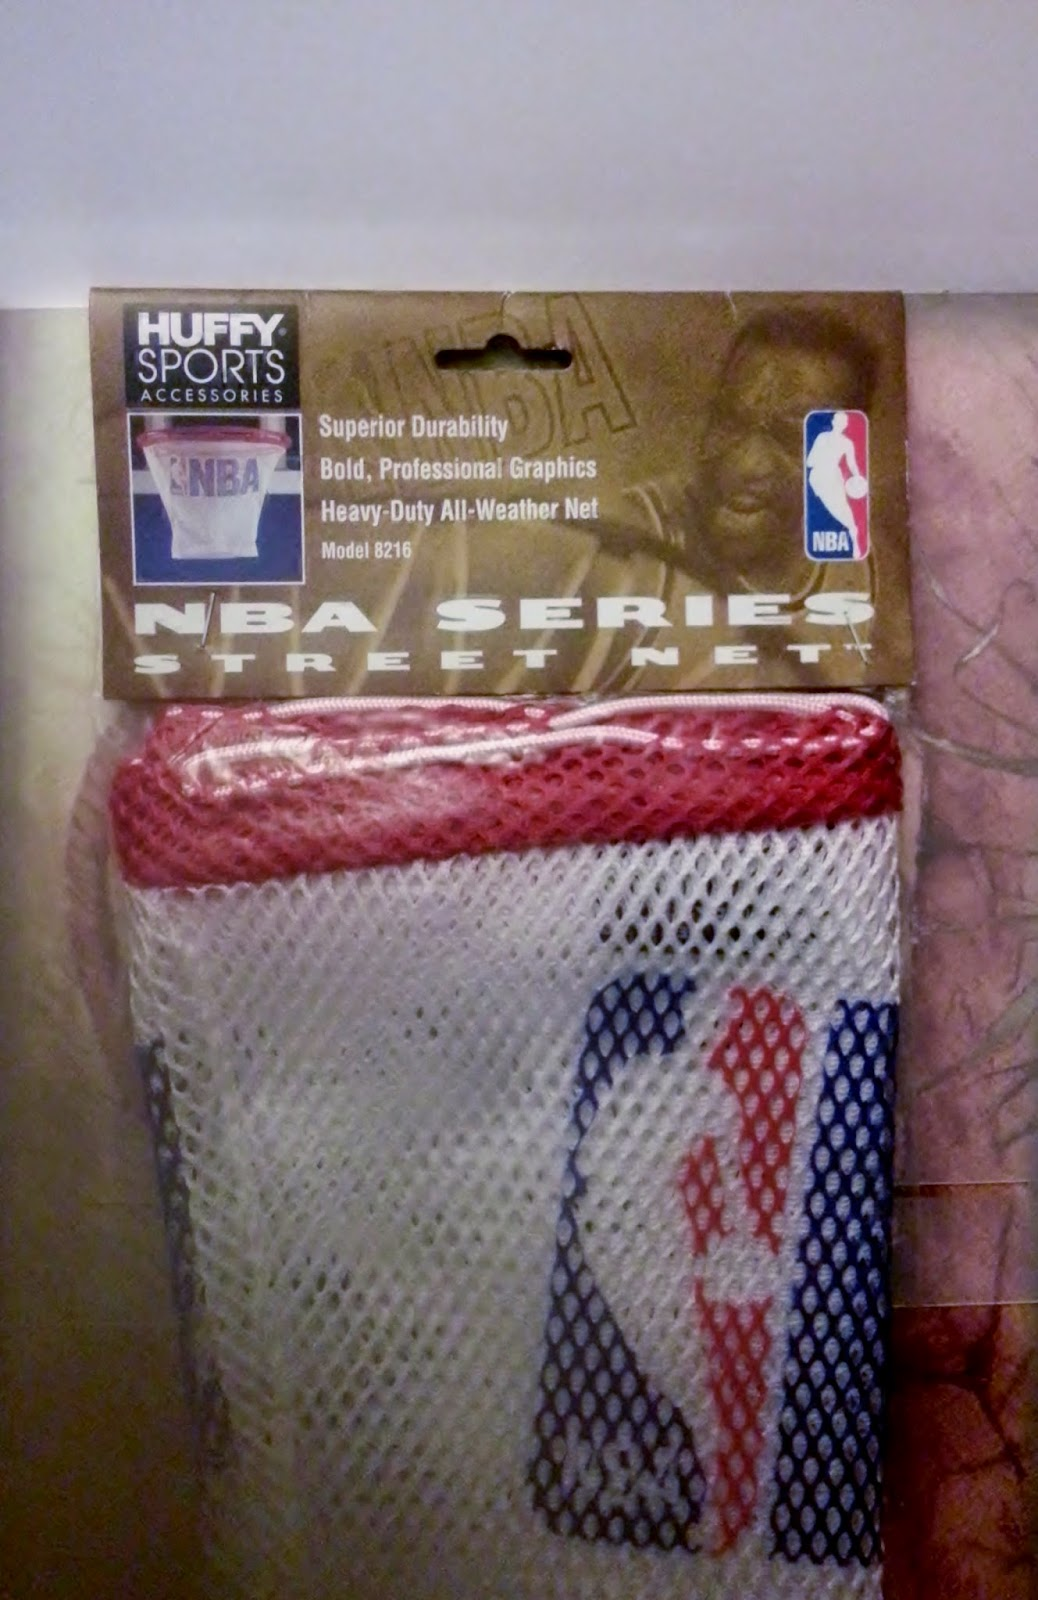 http://www.mymisi.com/gifts/1134768/huffy-sports-basketball-superior-durability-heavy-duty-all-weather-rim-hoop-backboard-nba-series-street-net#.VQFC-YVAsHU.blogger